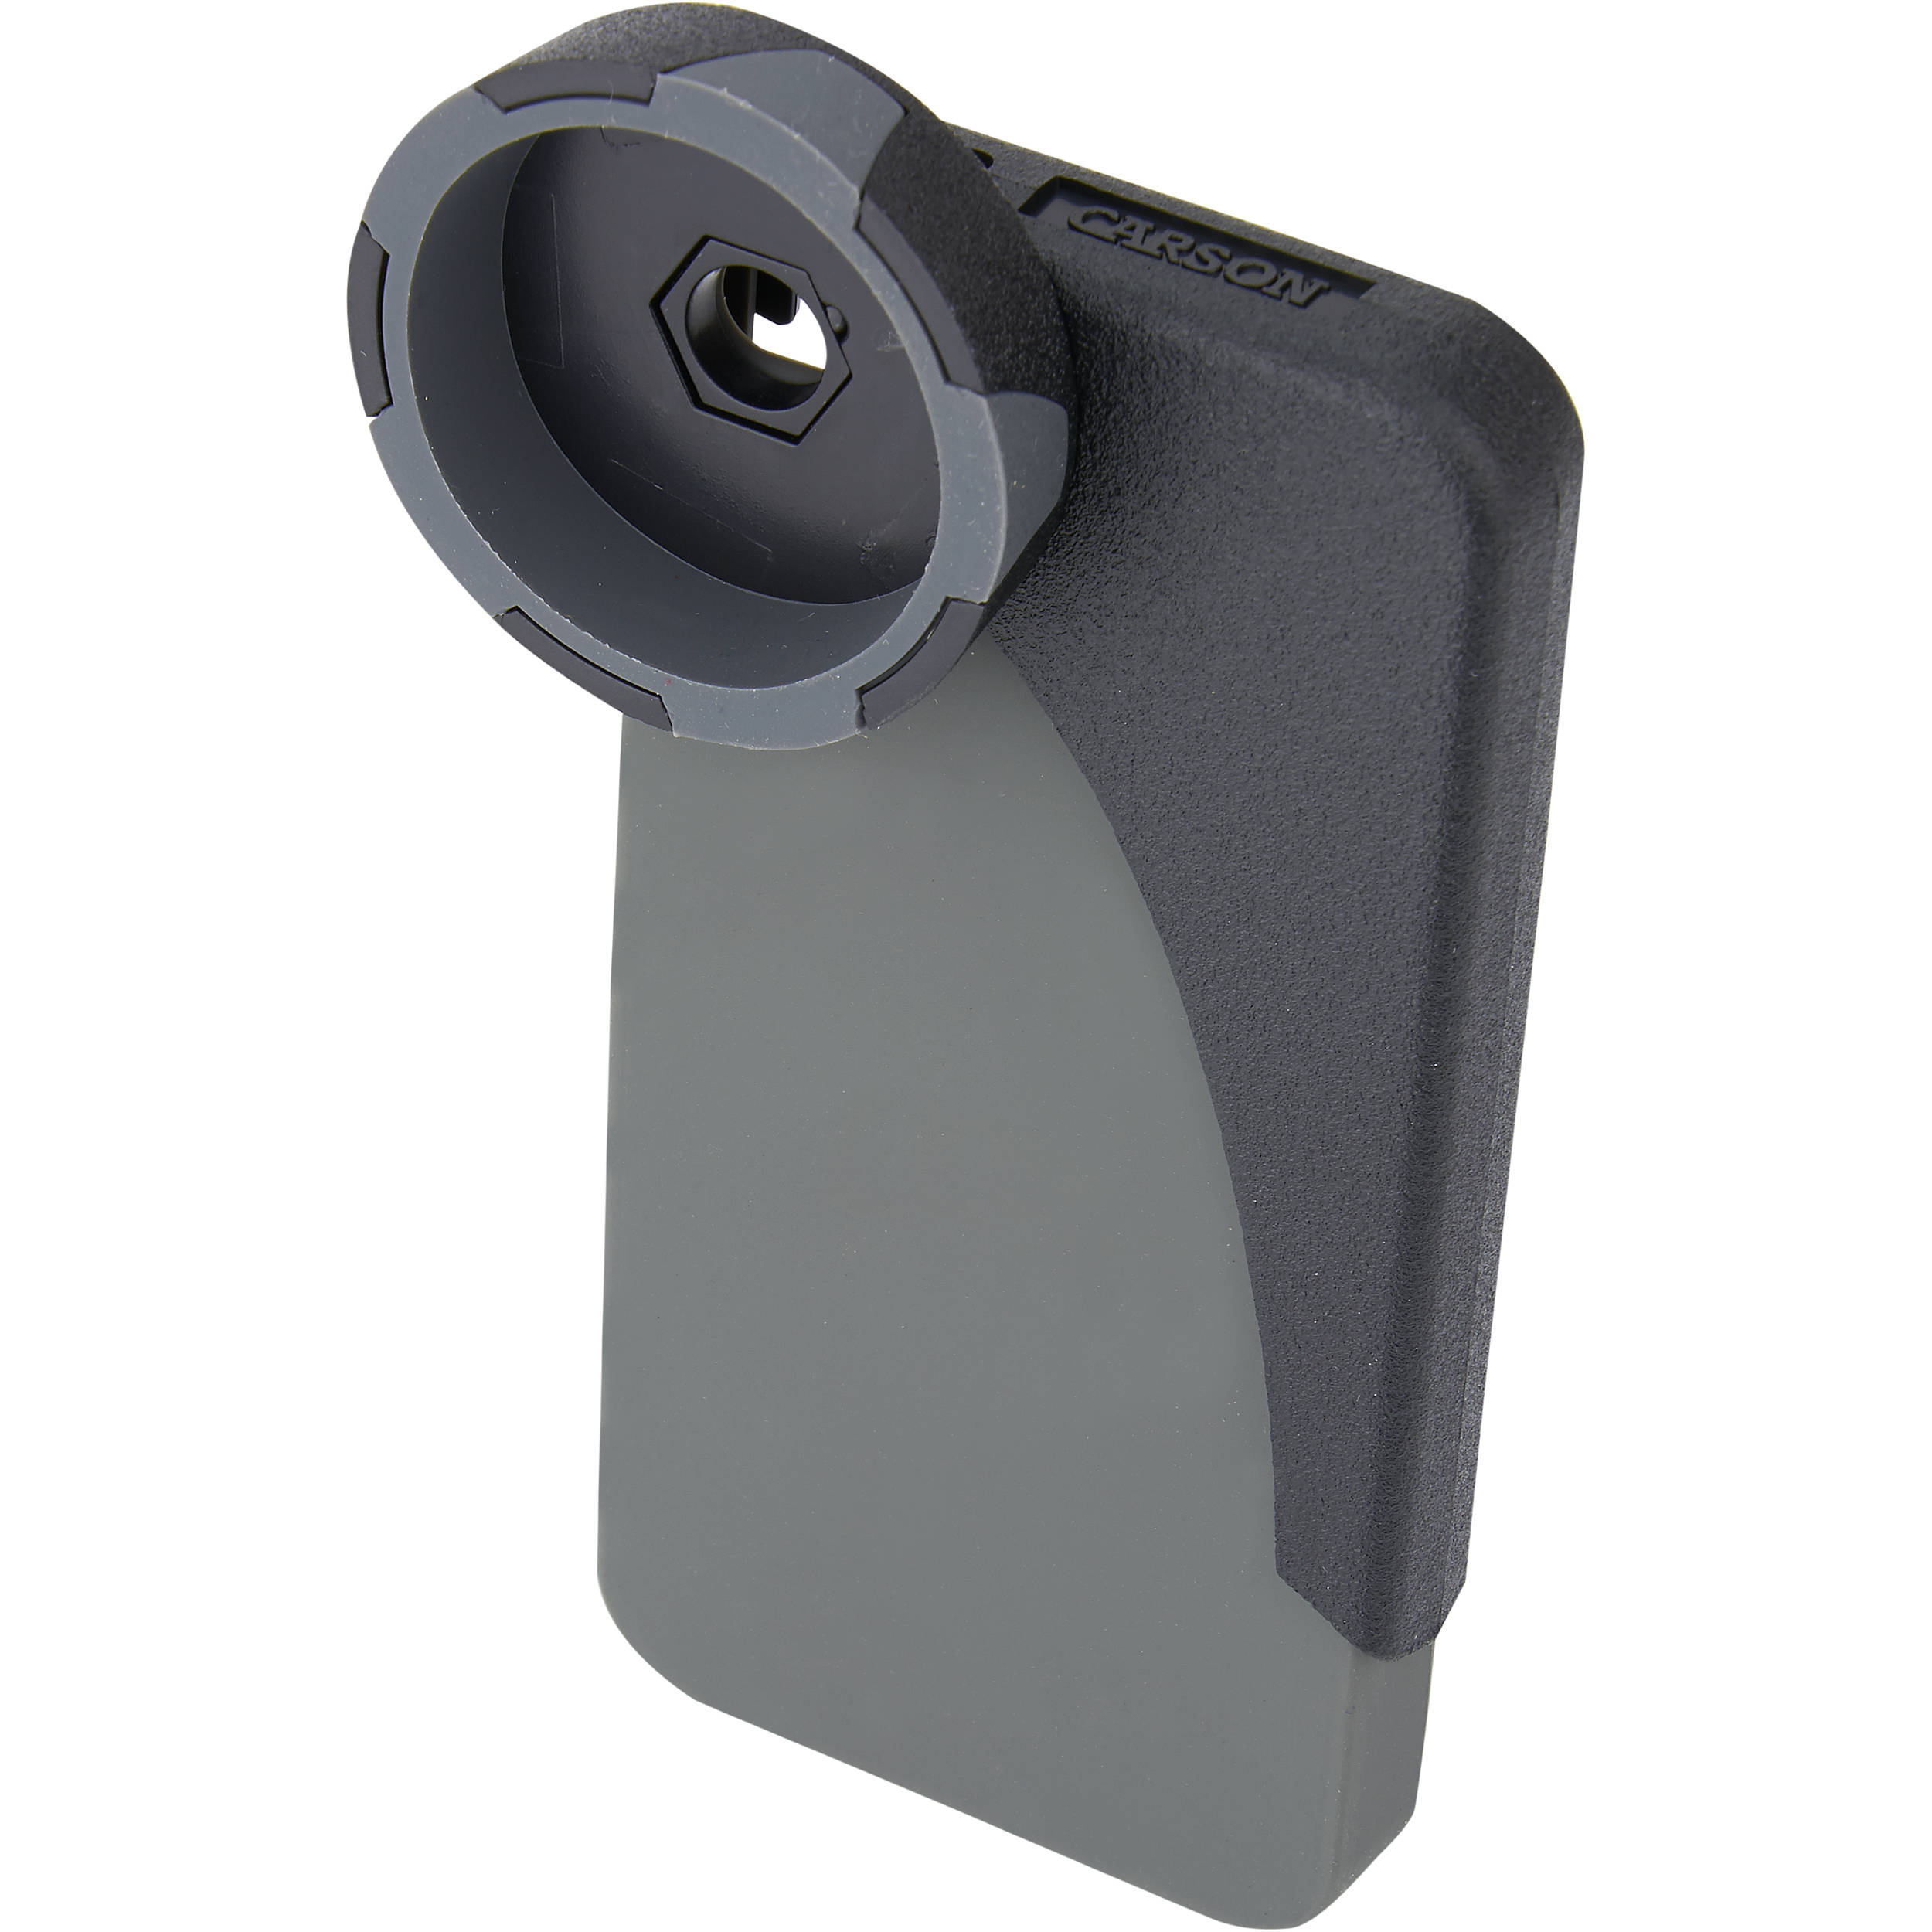 carson hookupz digiscoping adapter for iphone 4 4s 5 5s se. Black Bedroom Furniture Sets. Home Design Ideas